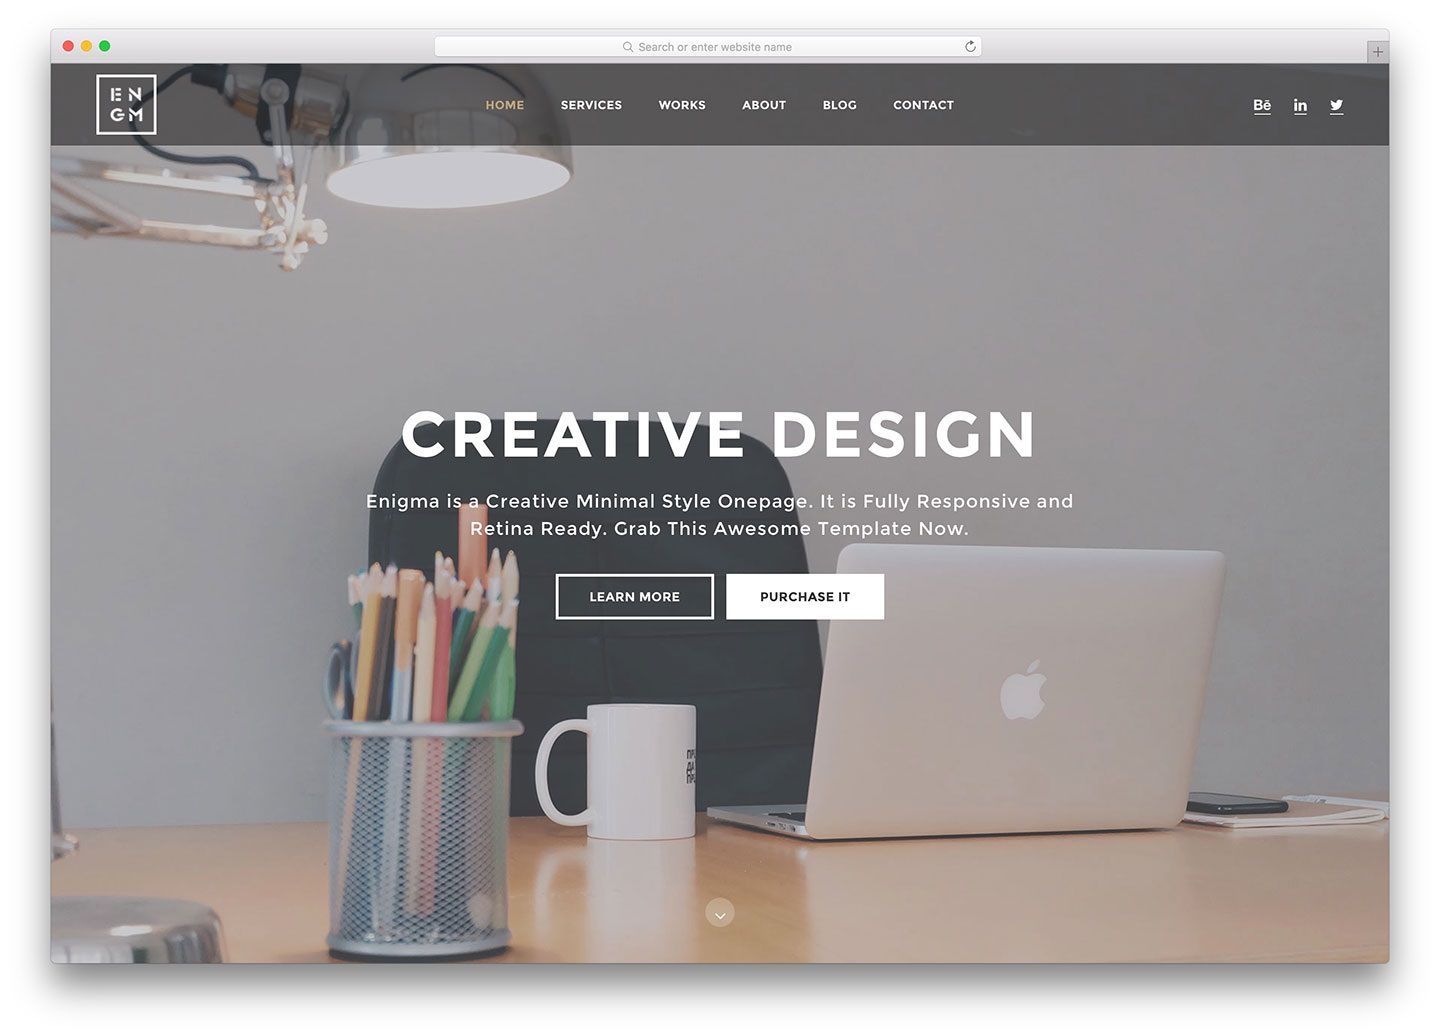 007 Stupendou Simple One Page Website Template Free Download Concept  Html With CsFull